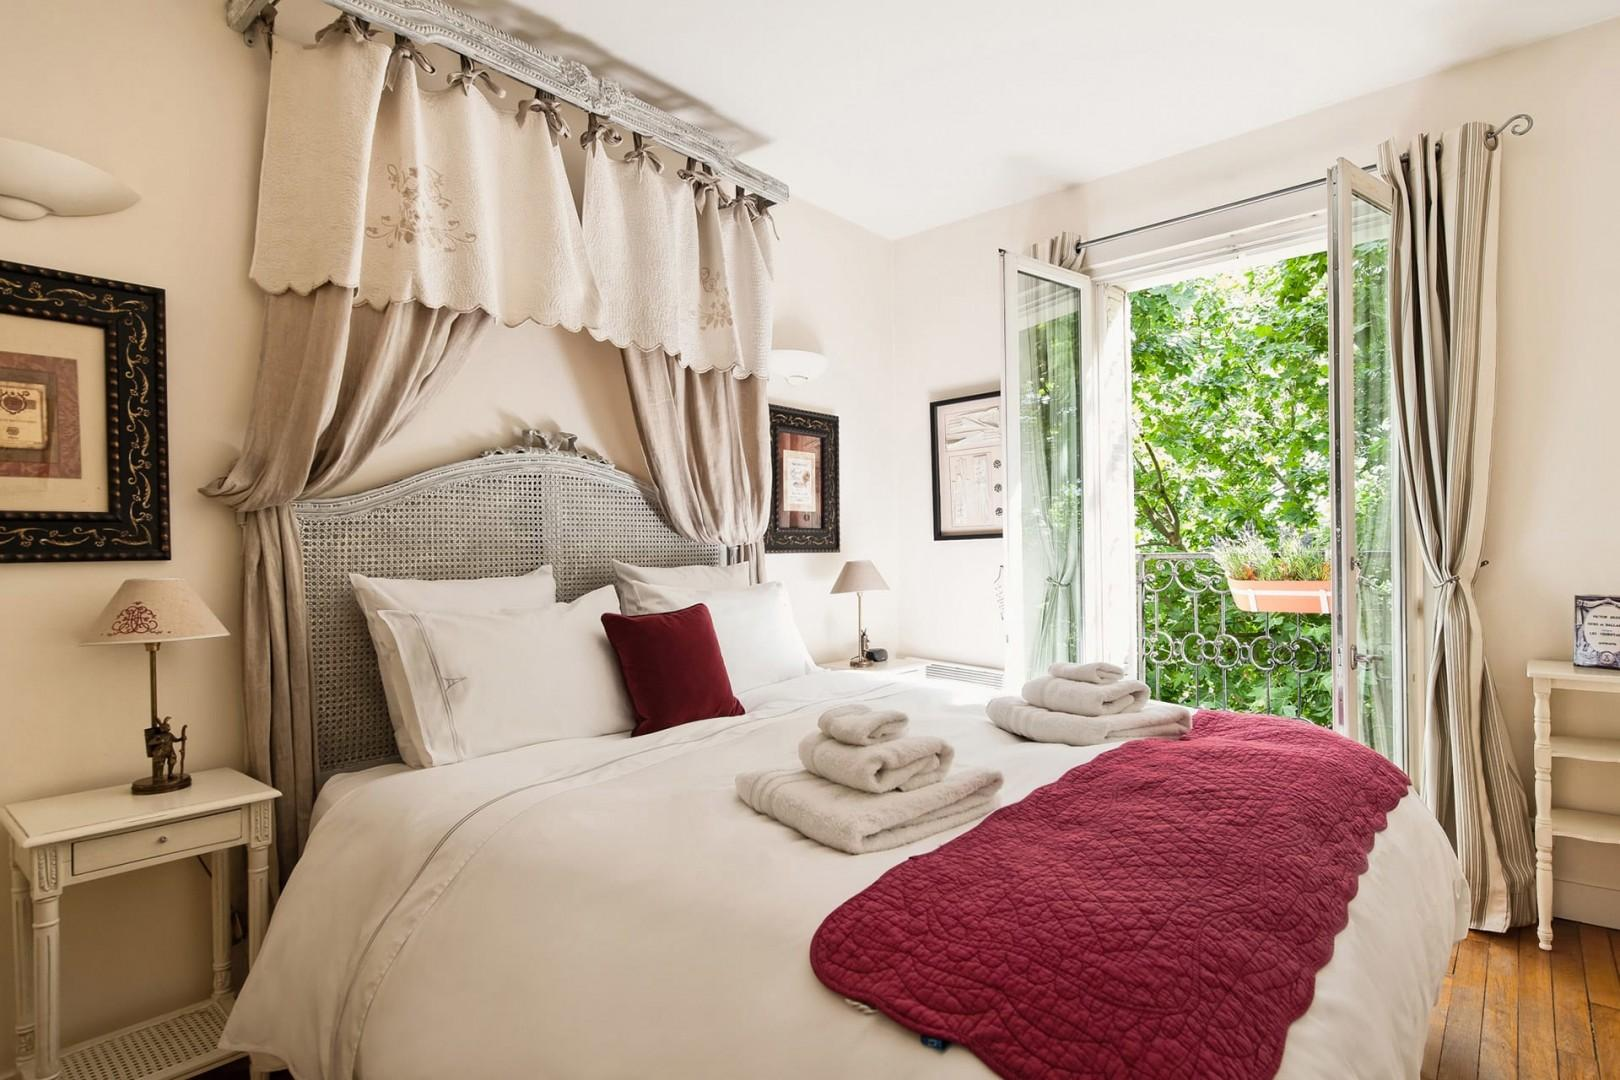 Enjoy the romantic bedroom with a comfortable bed.